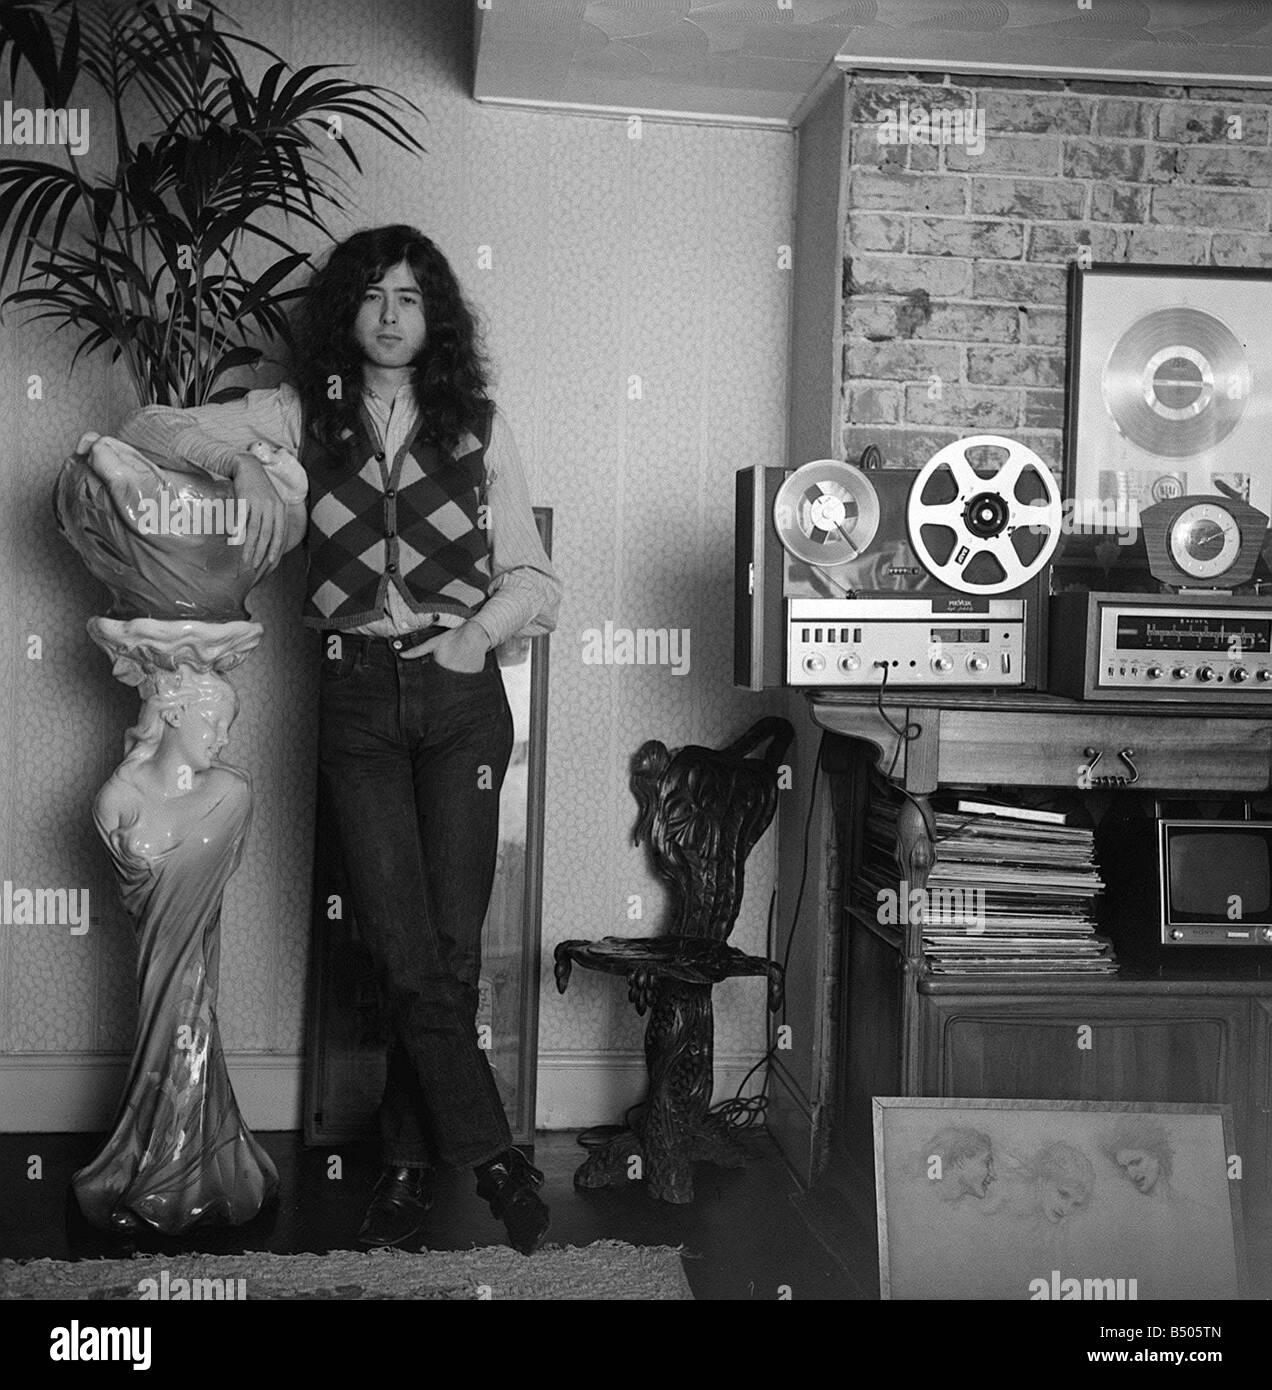 Jimmy Page Led Zeppelin guitarist January1970 - Stock Image